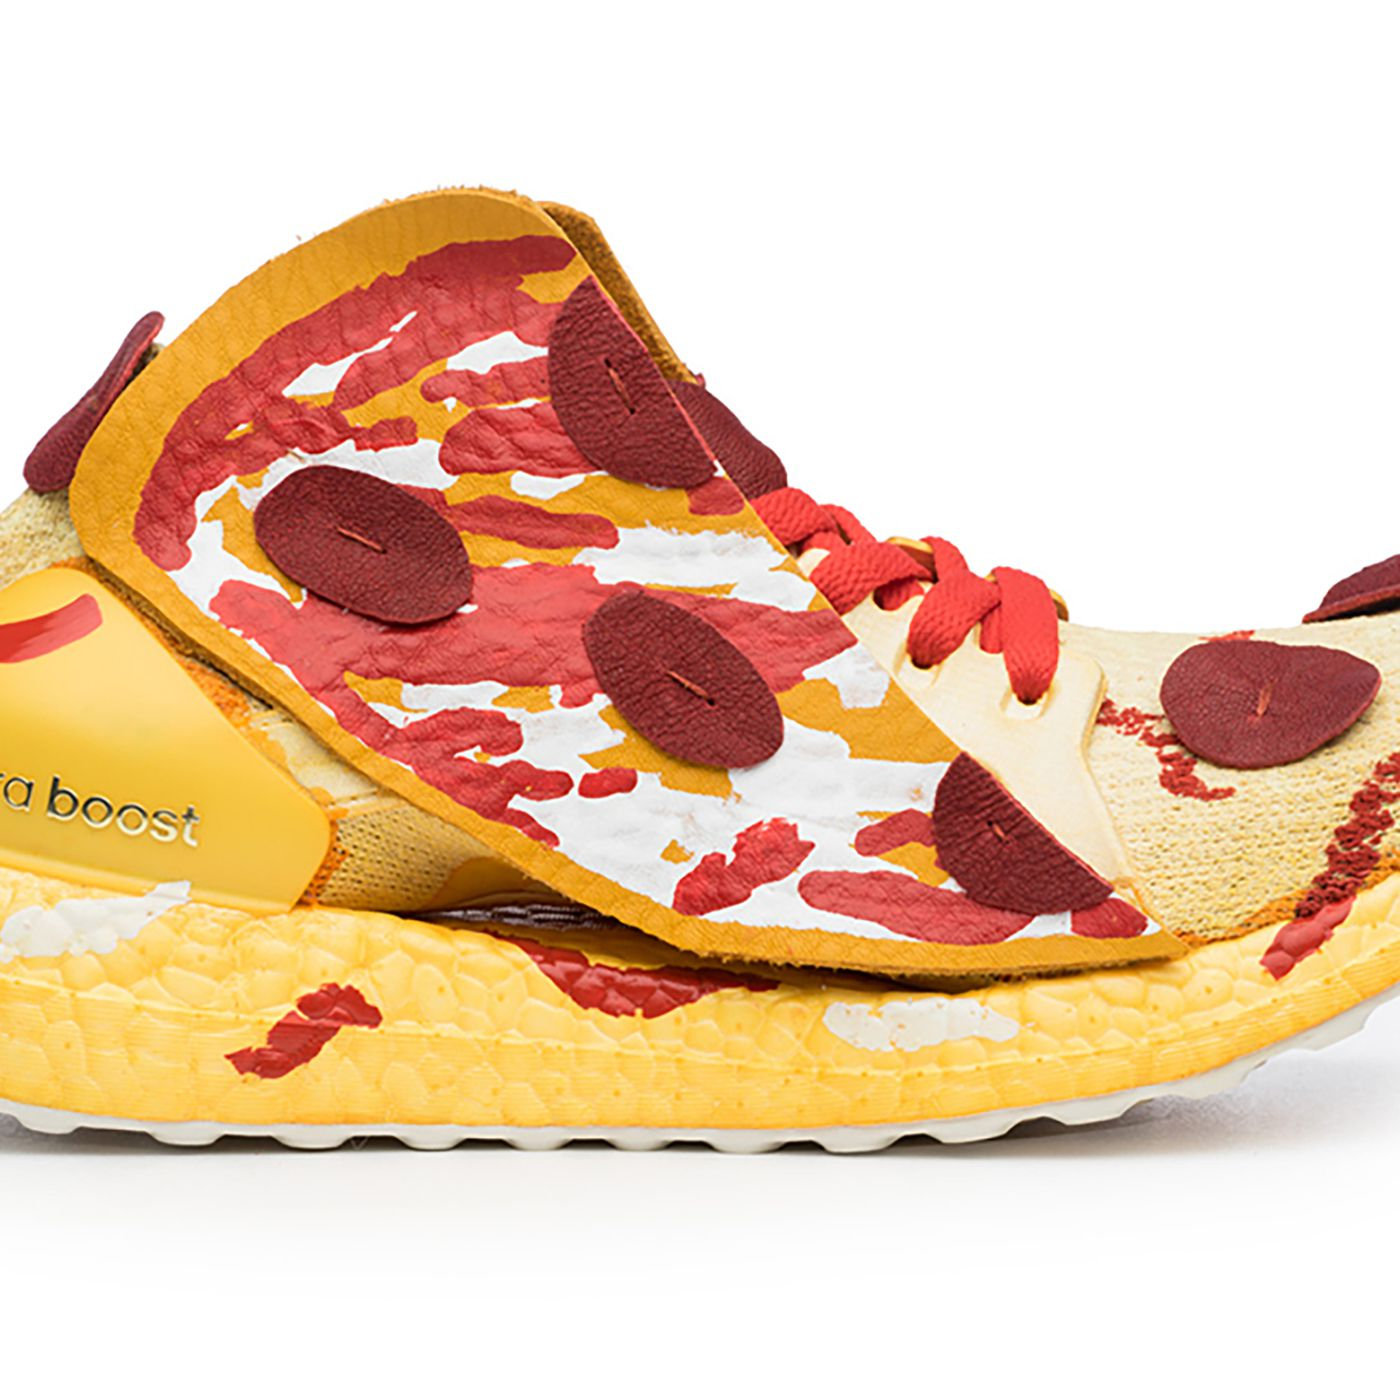 02a87588f24f37 These Are the Must-Have Shoes for Serious Food Obsessives - Eater